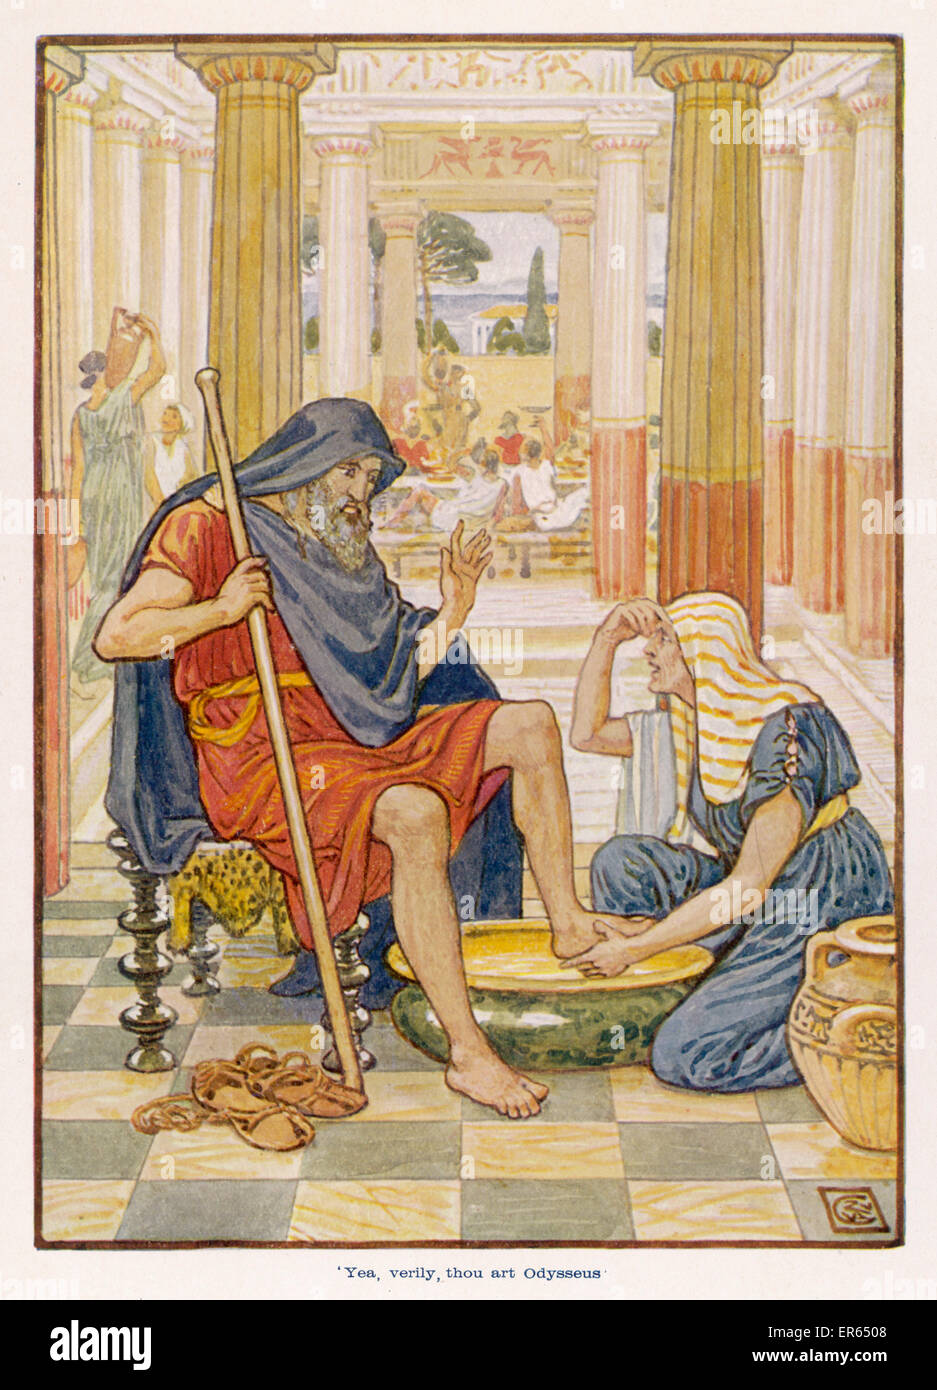 odysseus as a beggar essay Penelope as dreamer: a reading of book 19 of mysterious beggar in this essay i will take a new look at penelope's dream in book odysseus the beggar, whom we in the audience know is odysseus in disguise.